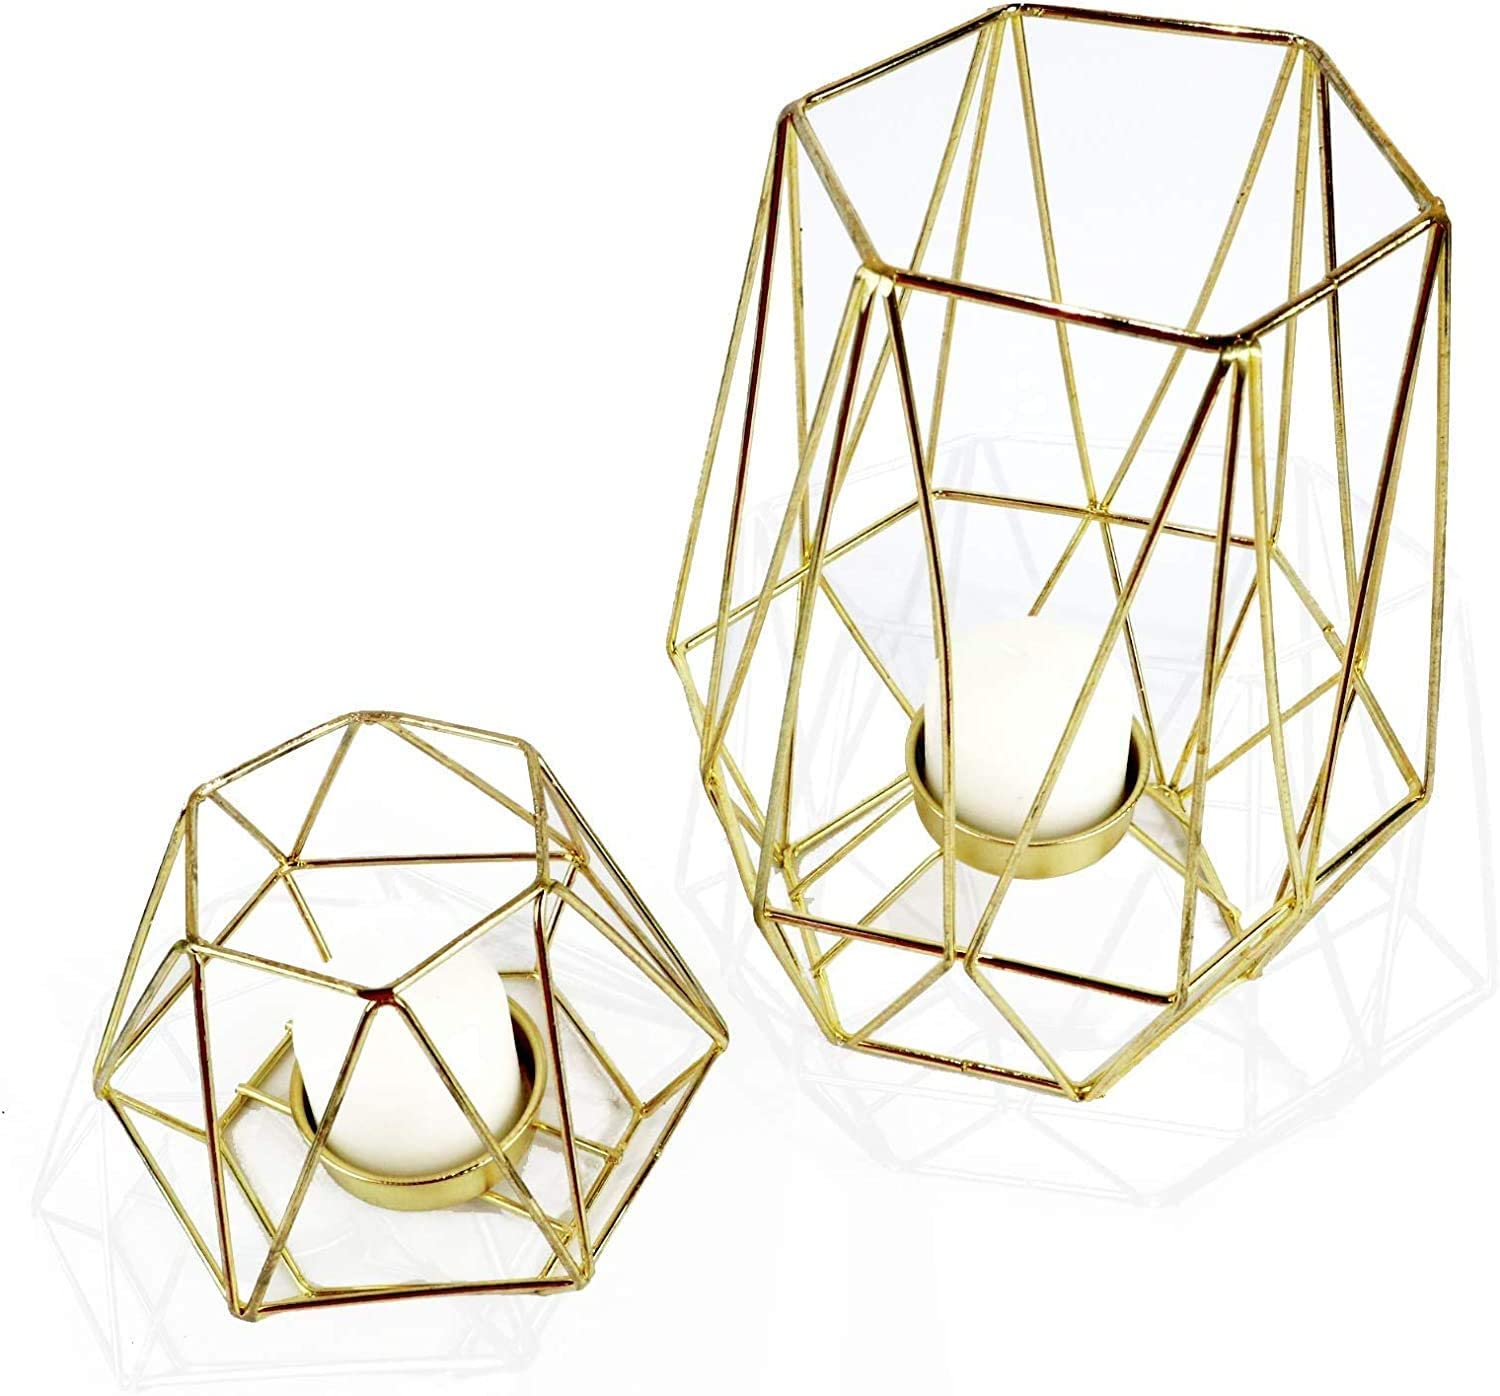 Geometric Gold Tealight Holder for Table Decor Large and Small Metal Hexagon Votive Candle Centrepiece for Shelf Decor Set of 2